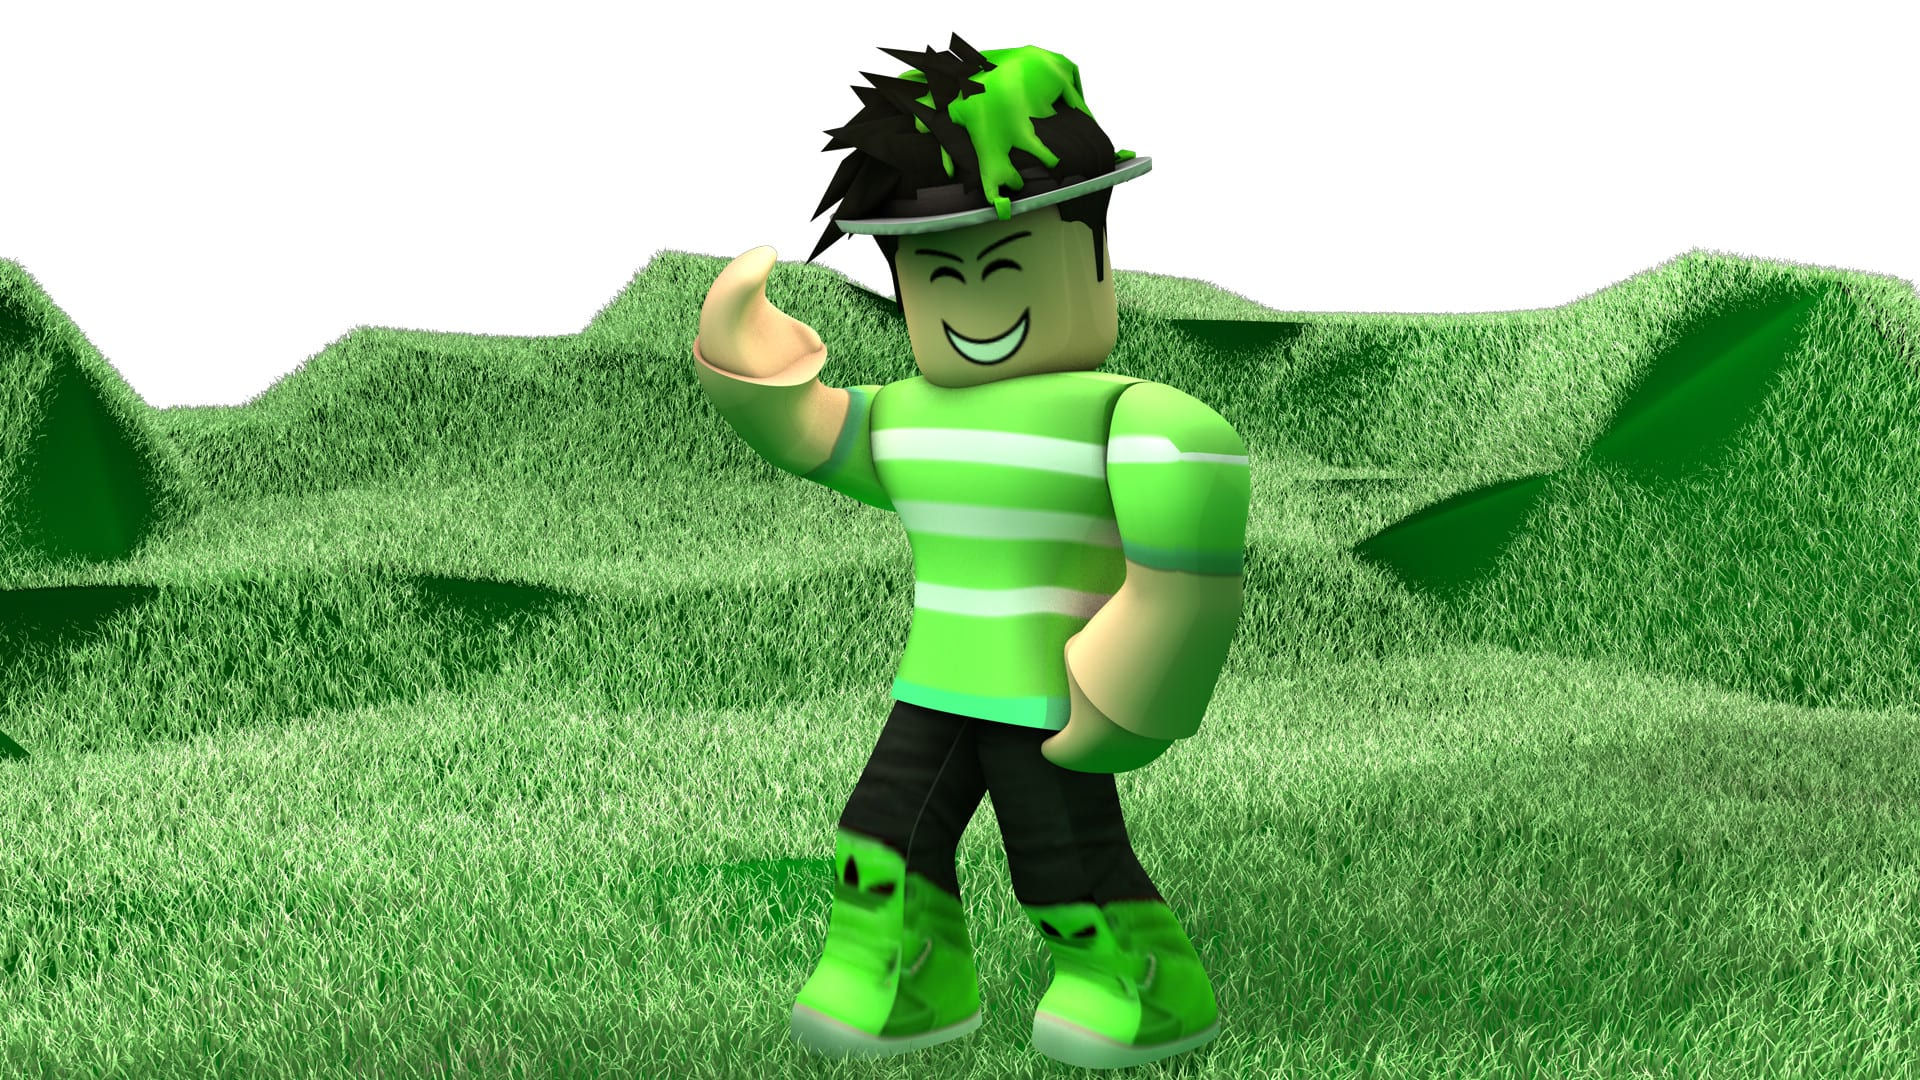 Roblox Avatar Wallpaper Maker Create A Render Of Your Roblox Character By Alterent